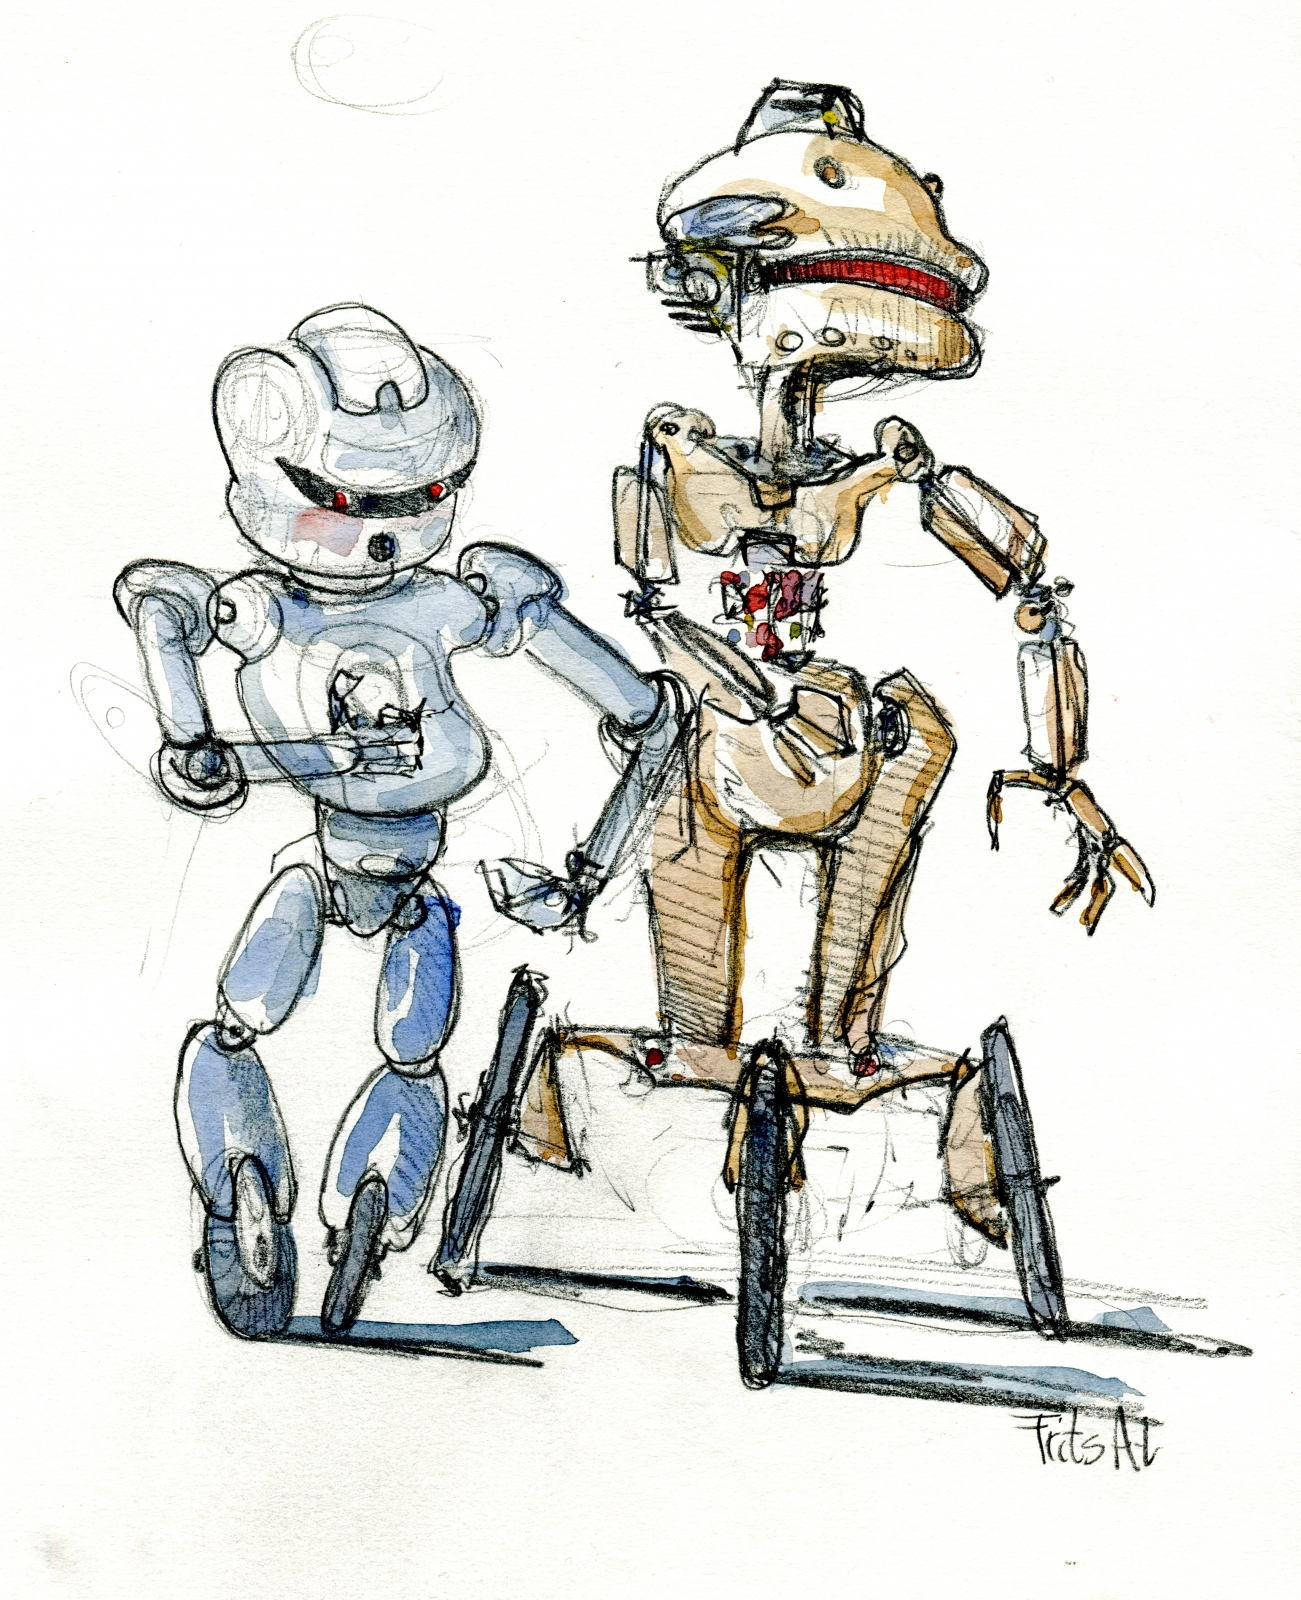 Pencil sketch of a robot on wheels